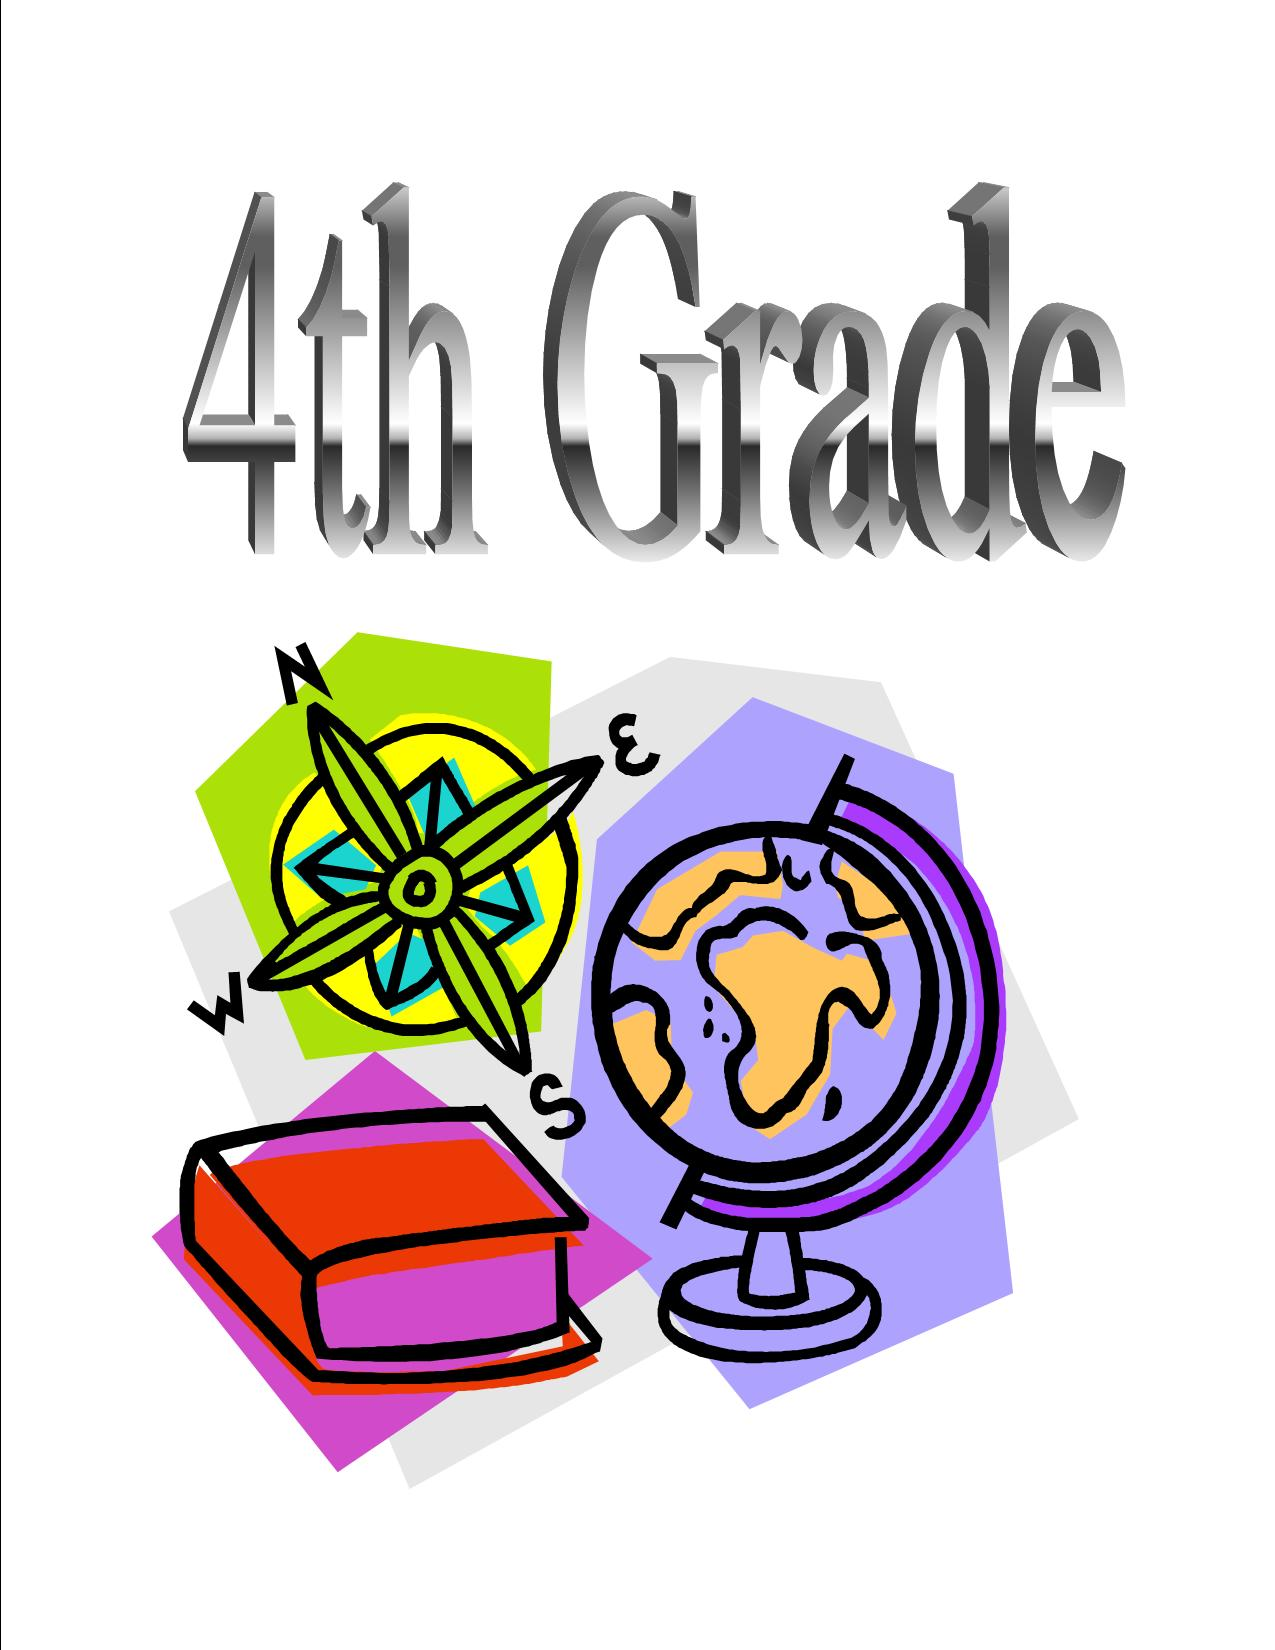 4th-Mrs. Belsak / Welcome to 4th Grade!